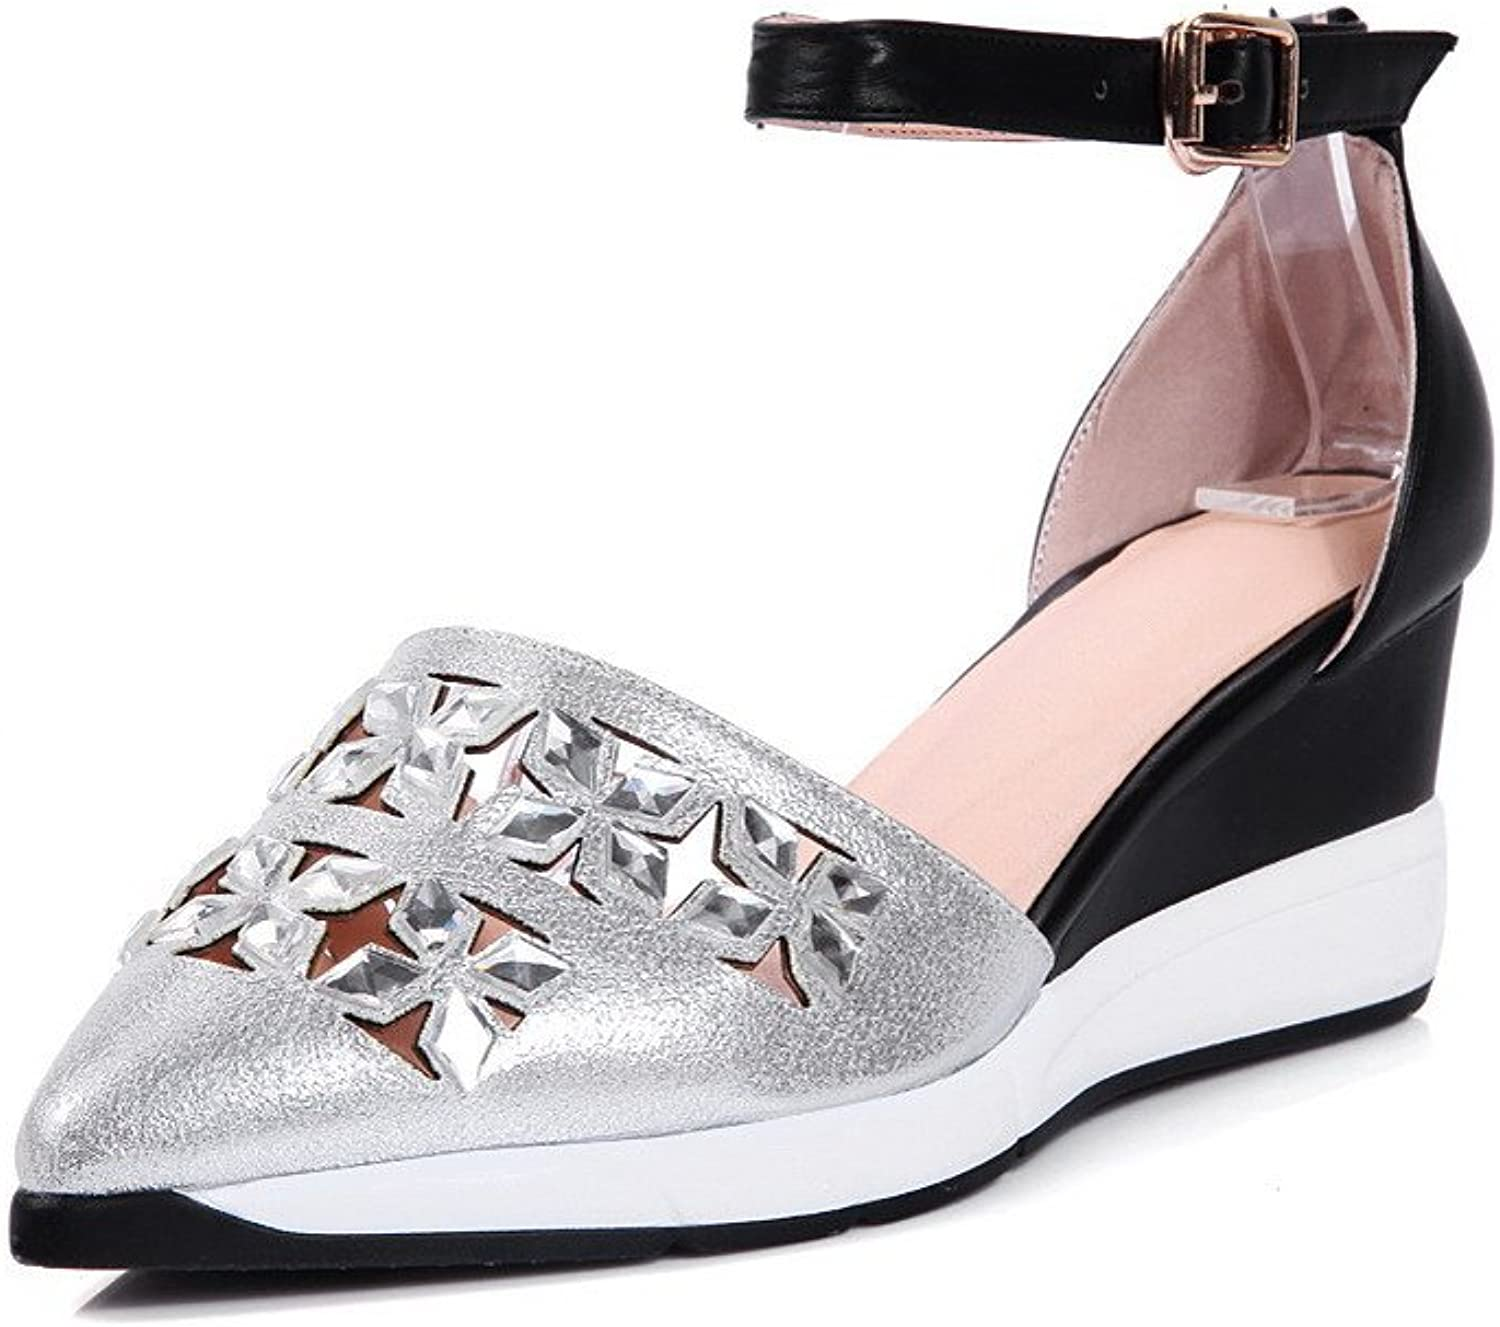 AmoonyFashion Women's Soft Leather Pointed Closed Toe Kitten Heels Assorted color Pumps shoes